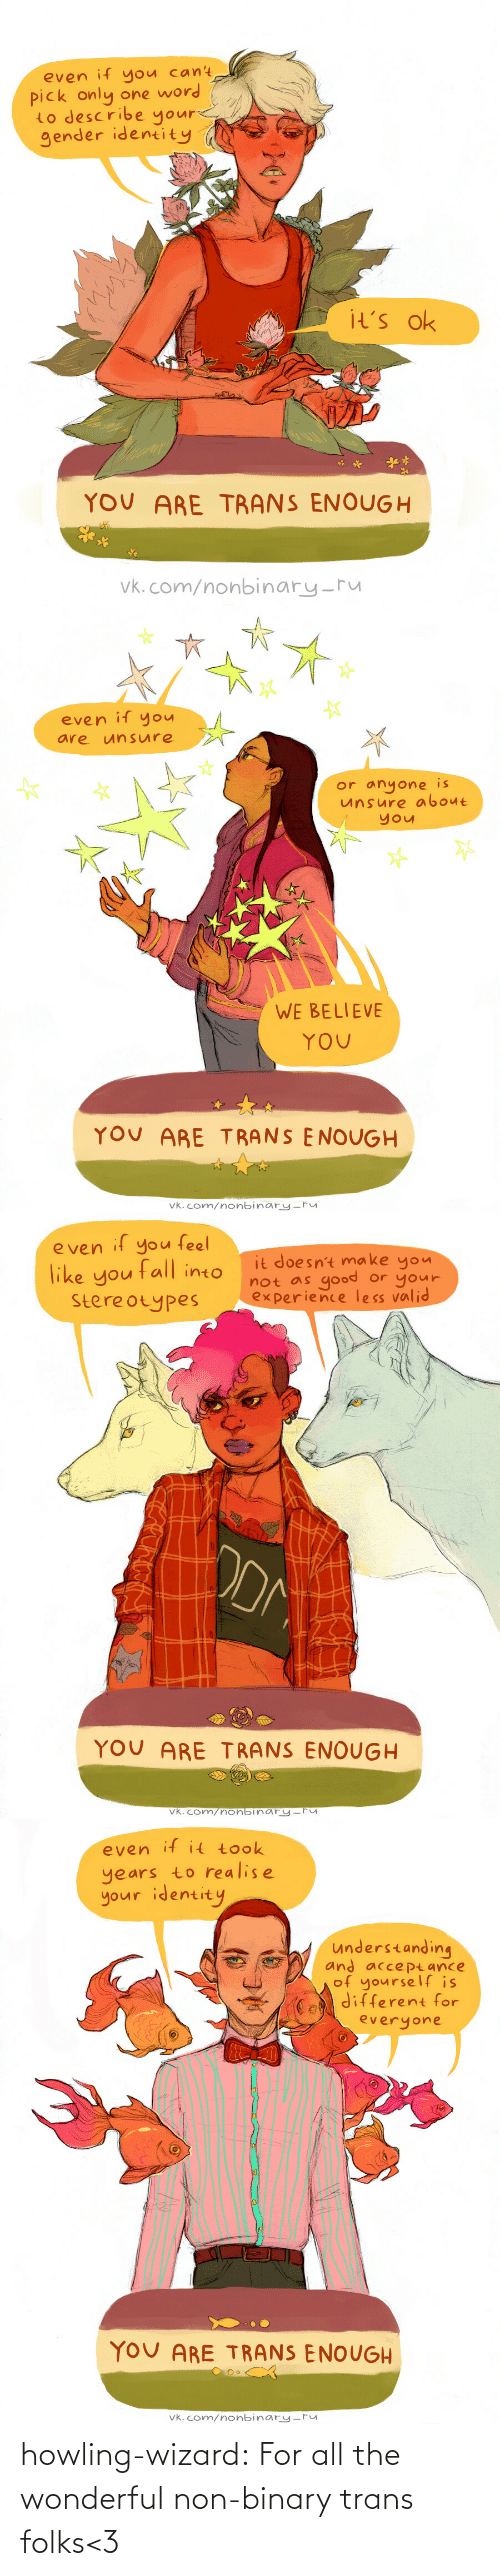 trans: howling-wizard: For all the wonderful non-binary trans folks<3